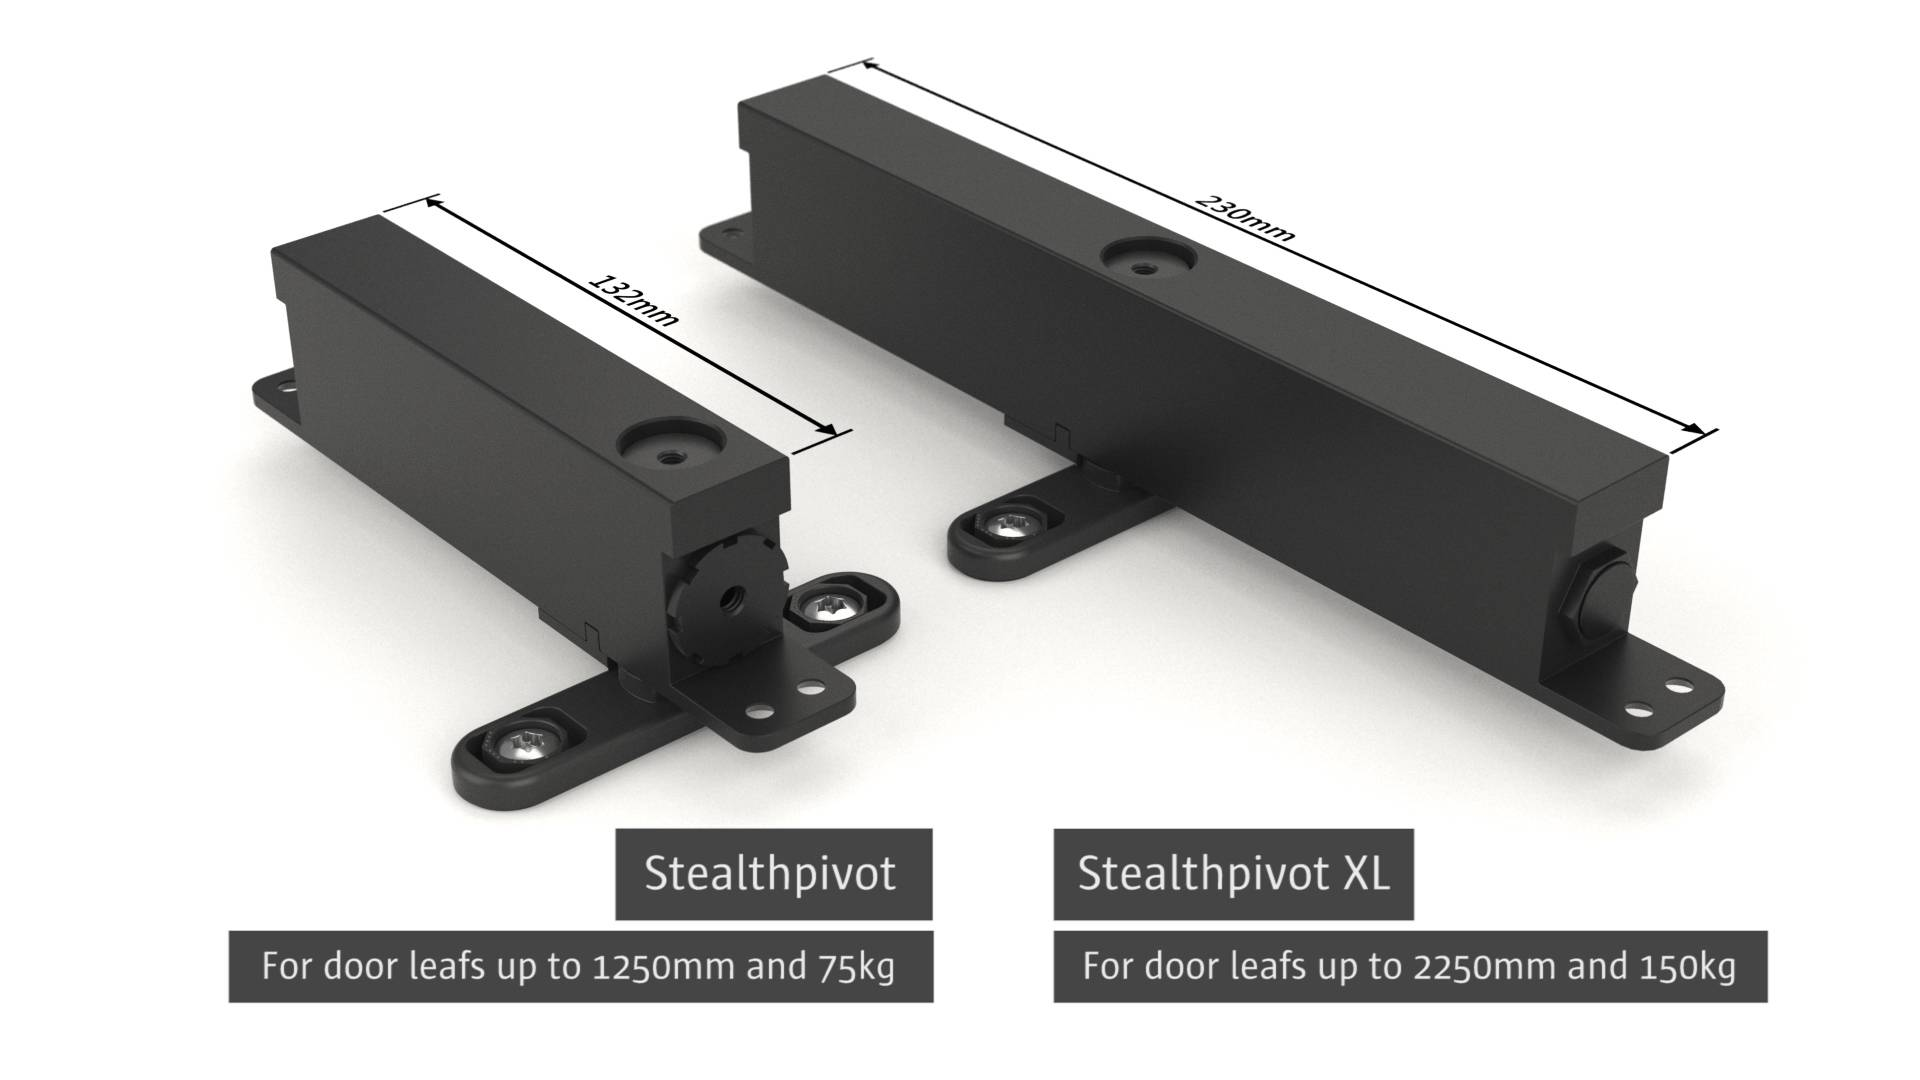 compact self-closing pivot hinge